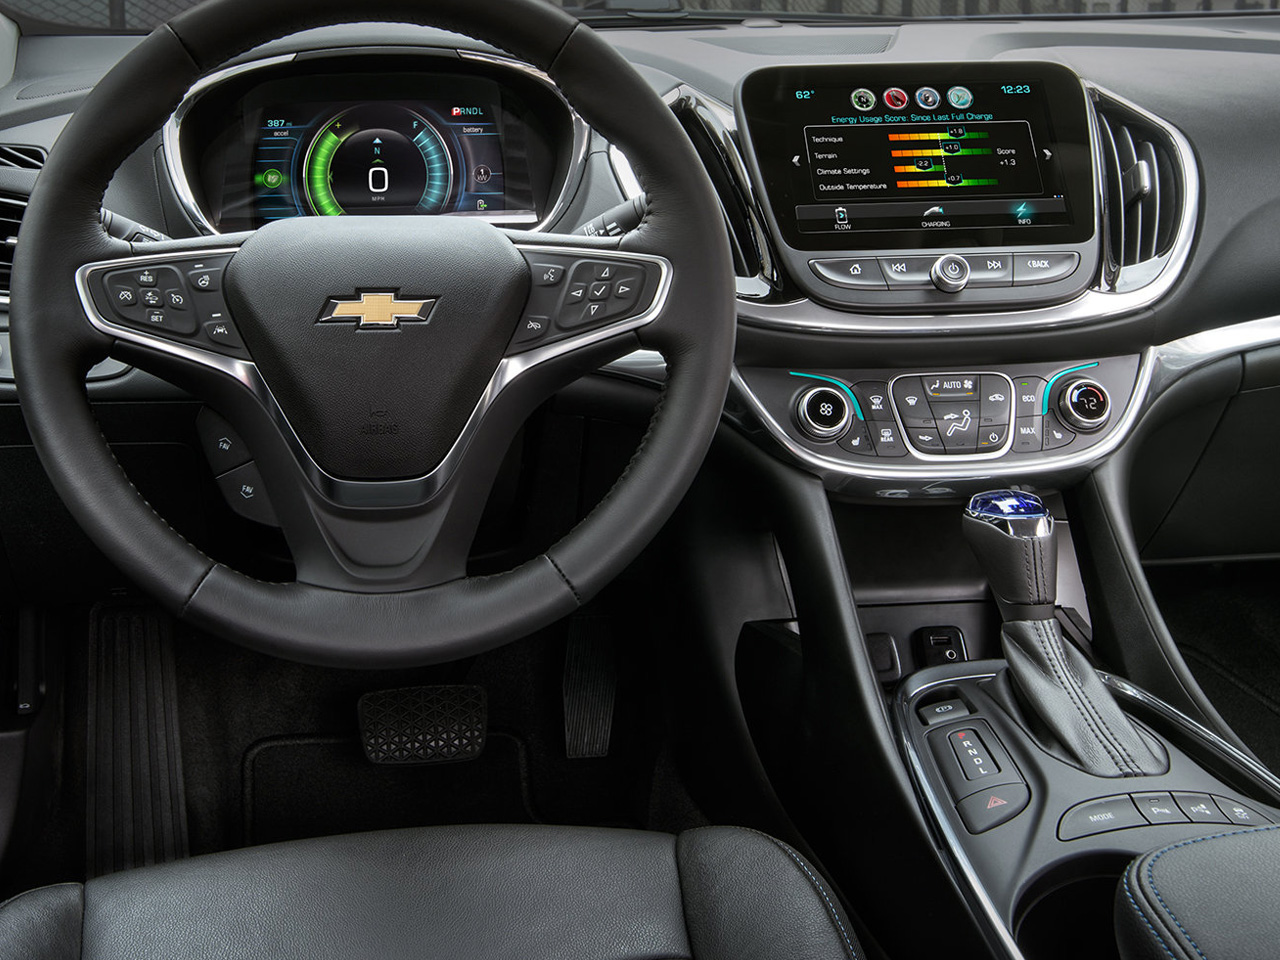 2018 chevrolet volt interior.  volt interior overview the 2018 chevrolet volt  intended chevrolet volt interior